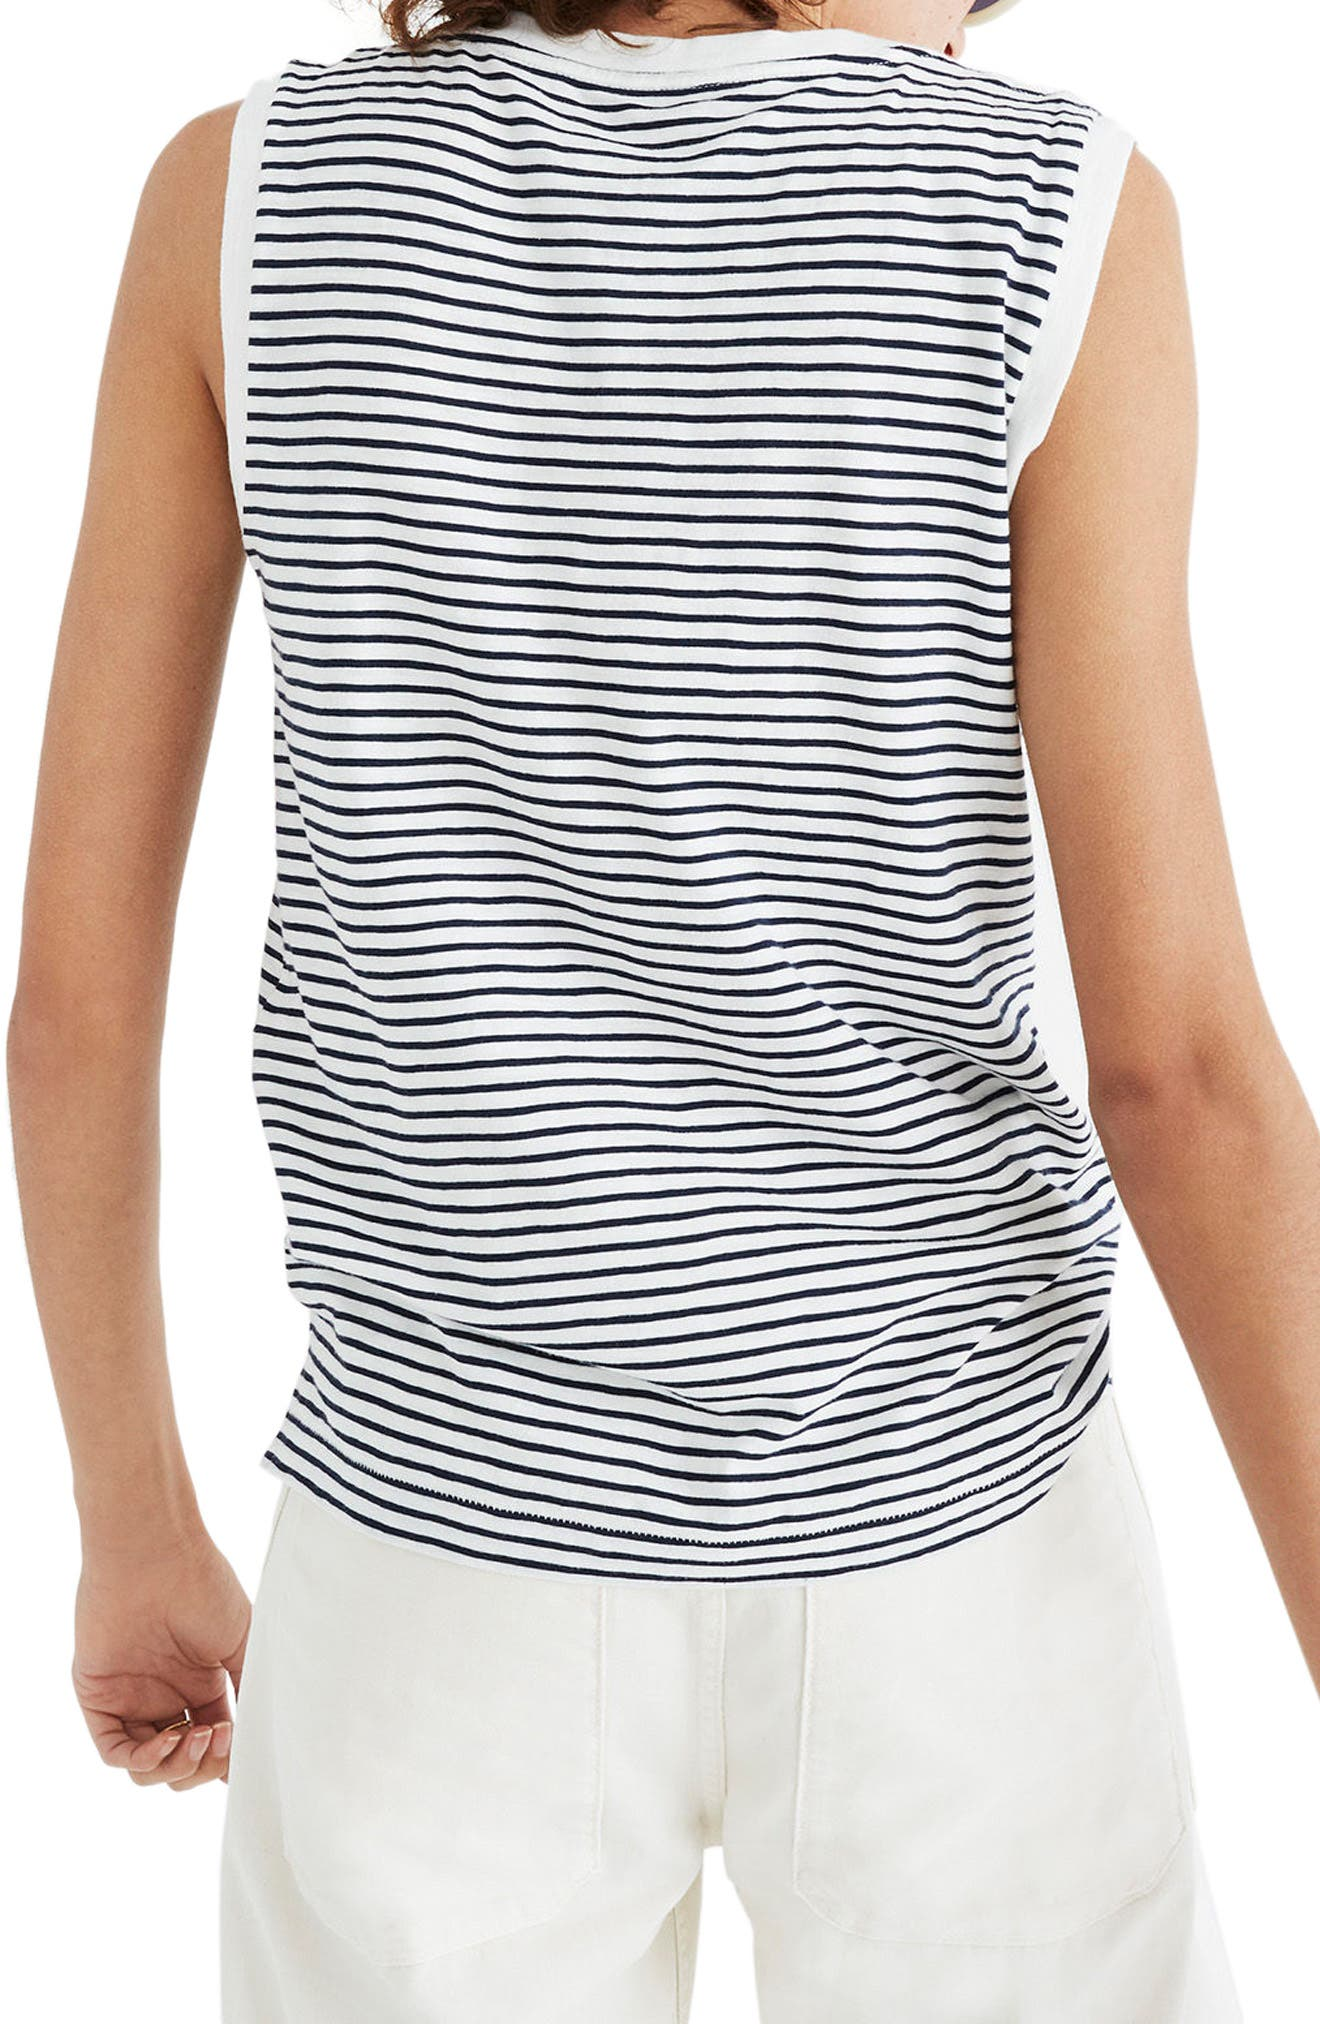 Alternate Image 2  - Madewell Whisper Cotton Stripe Crewneck Muscle Tank